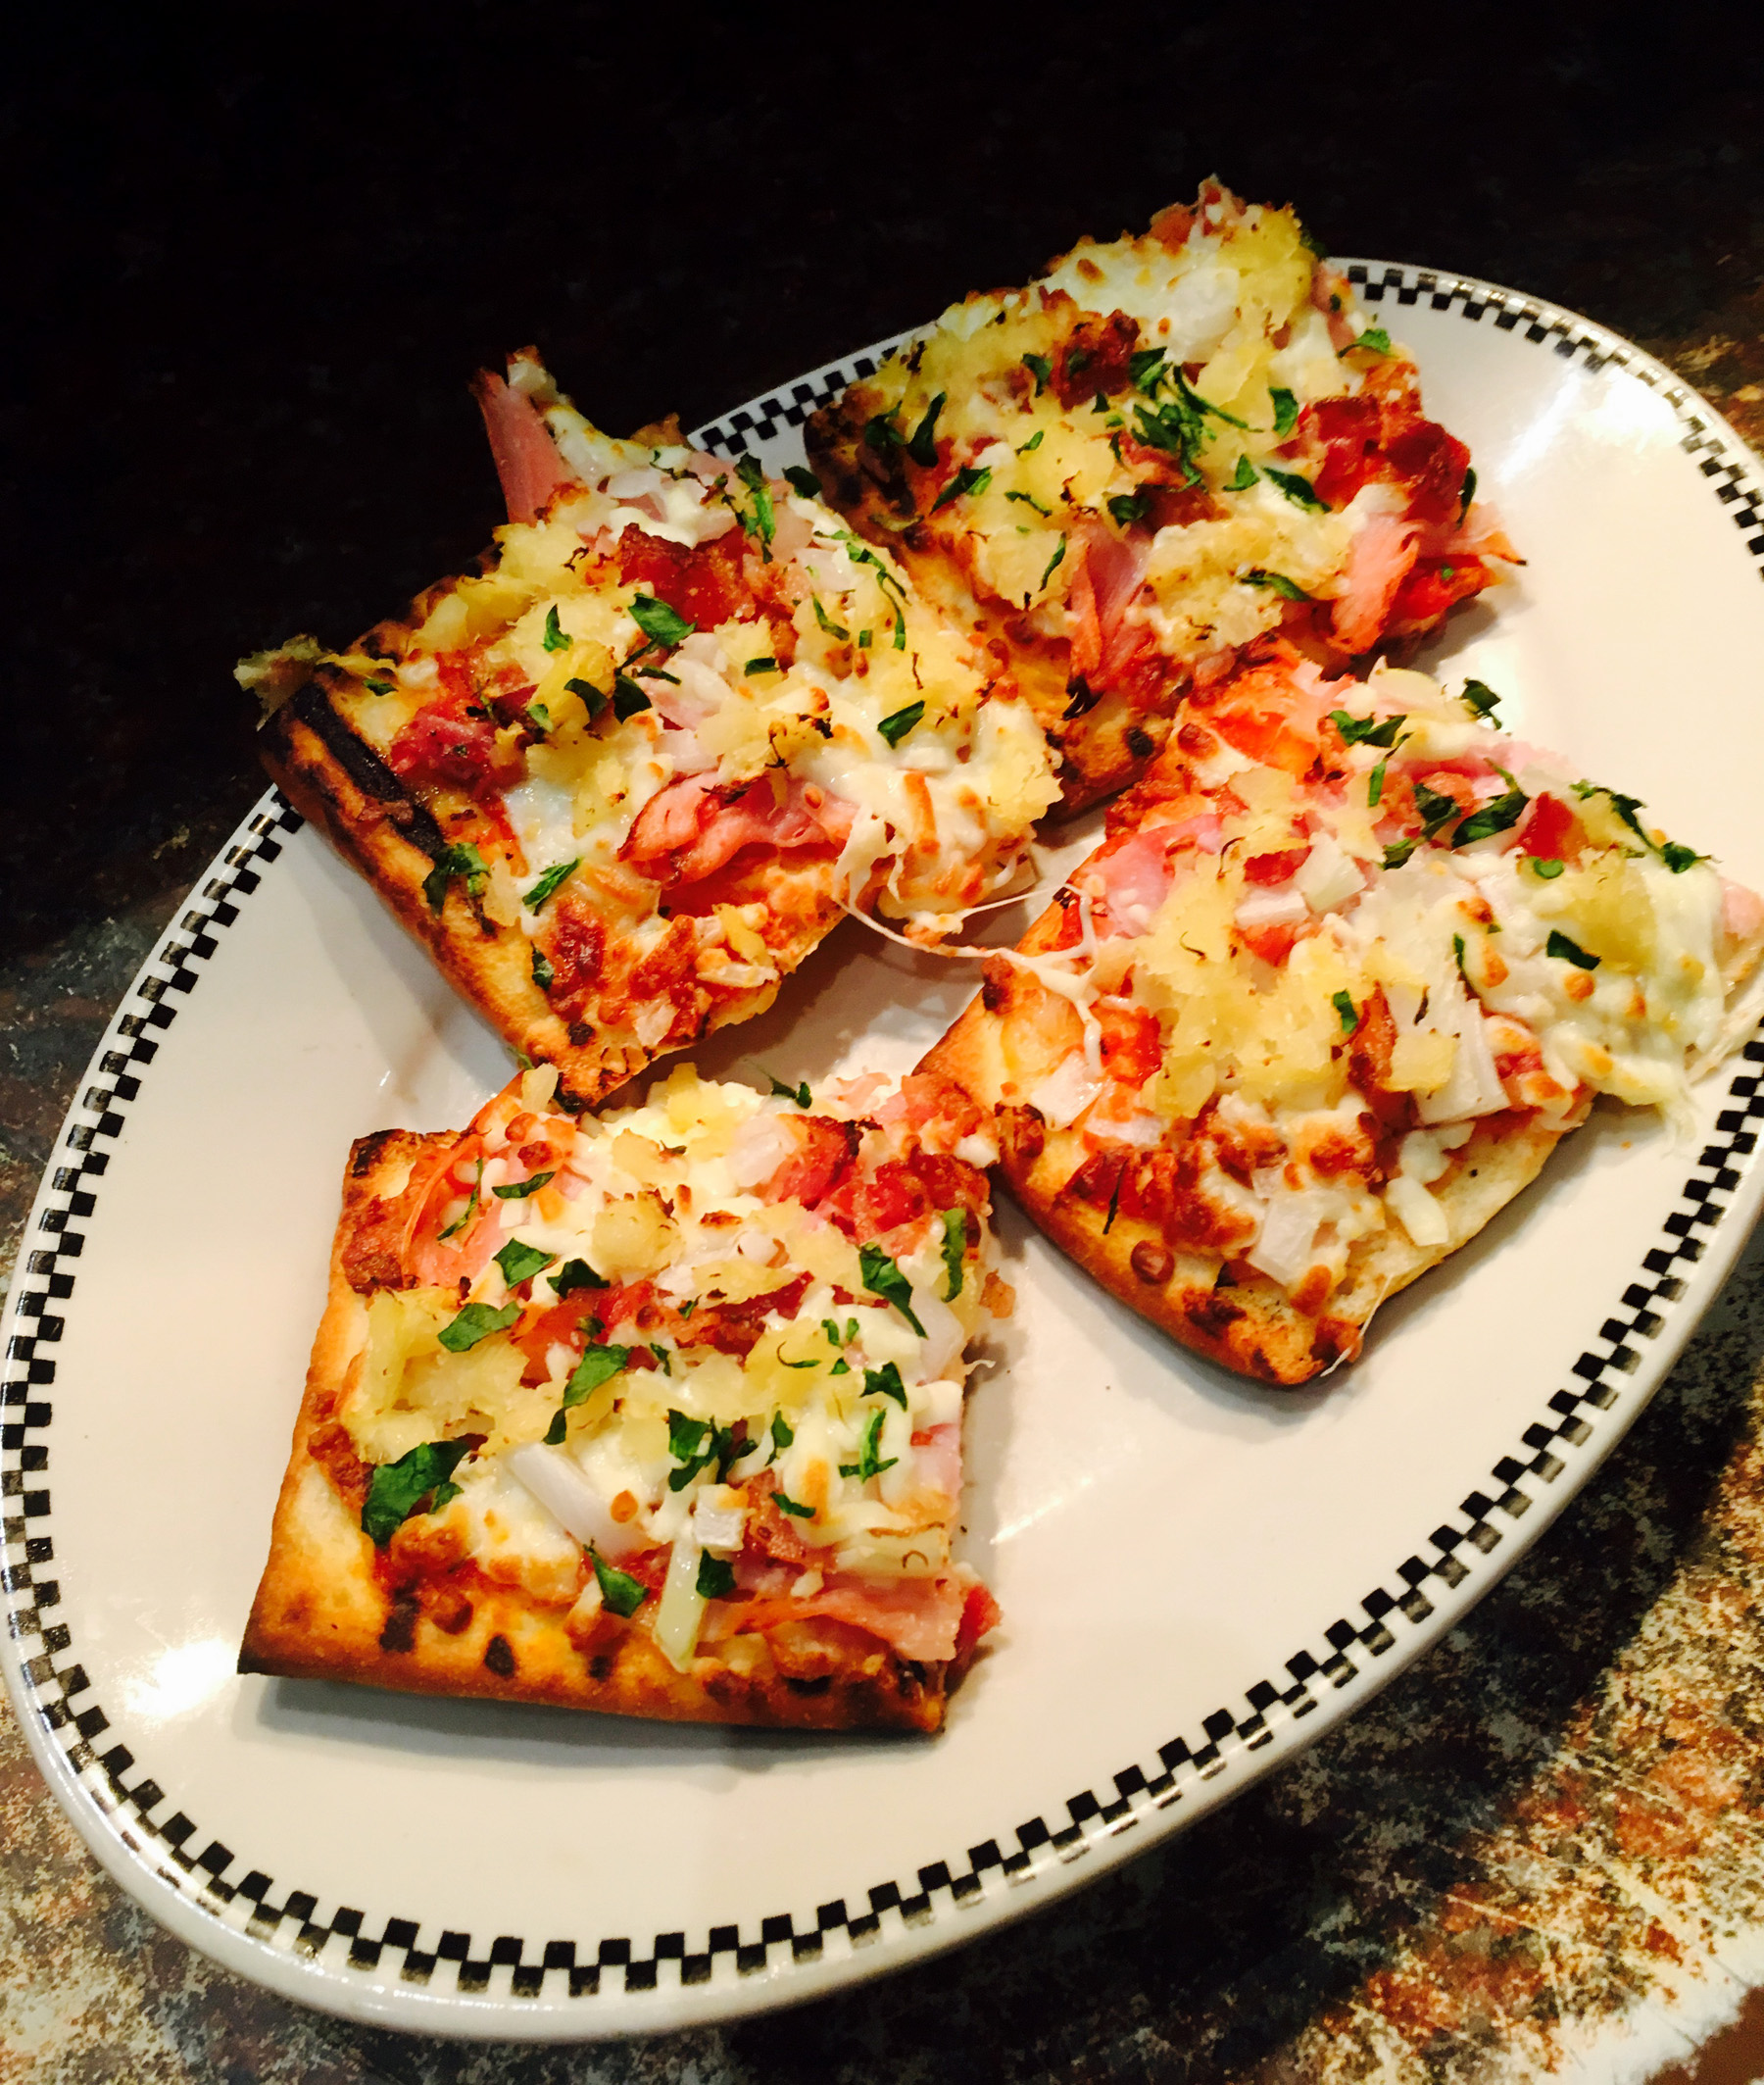 Our Grilled European Flat Bread Pizza also comes with your choice of soup or Caesar salad